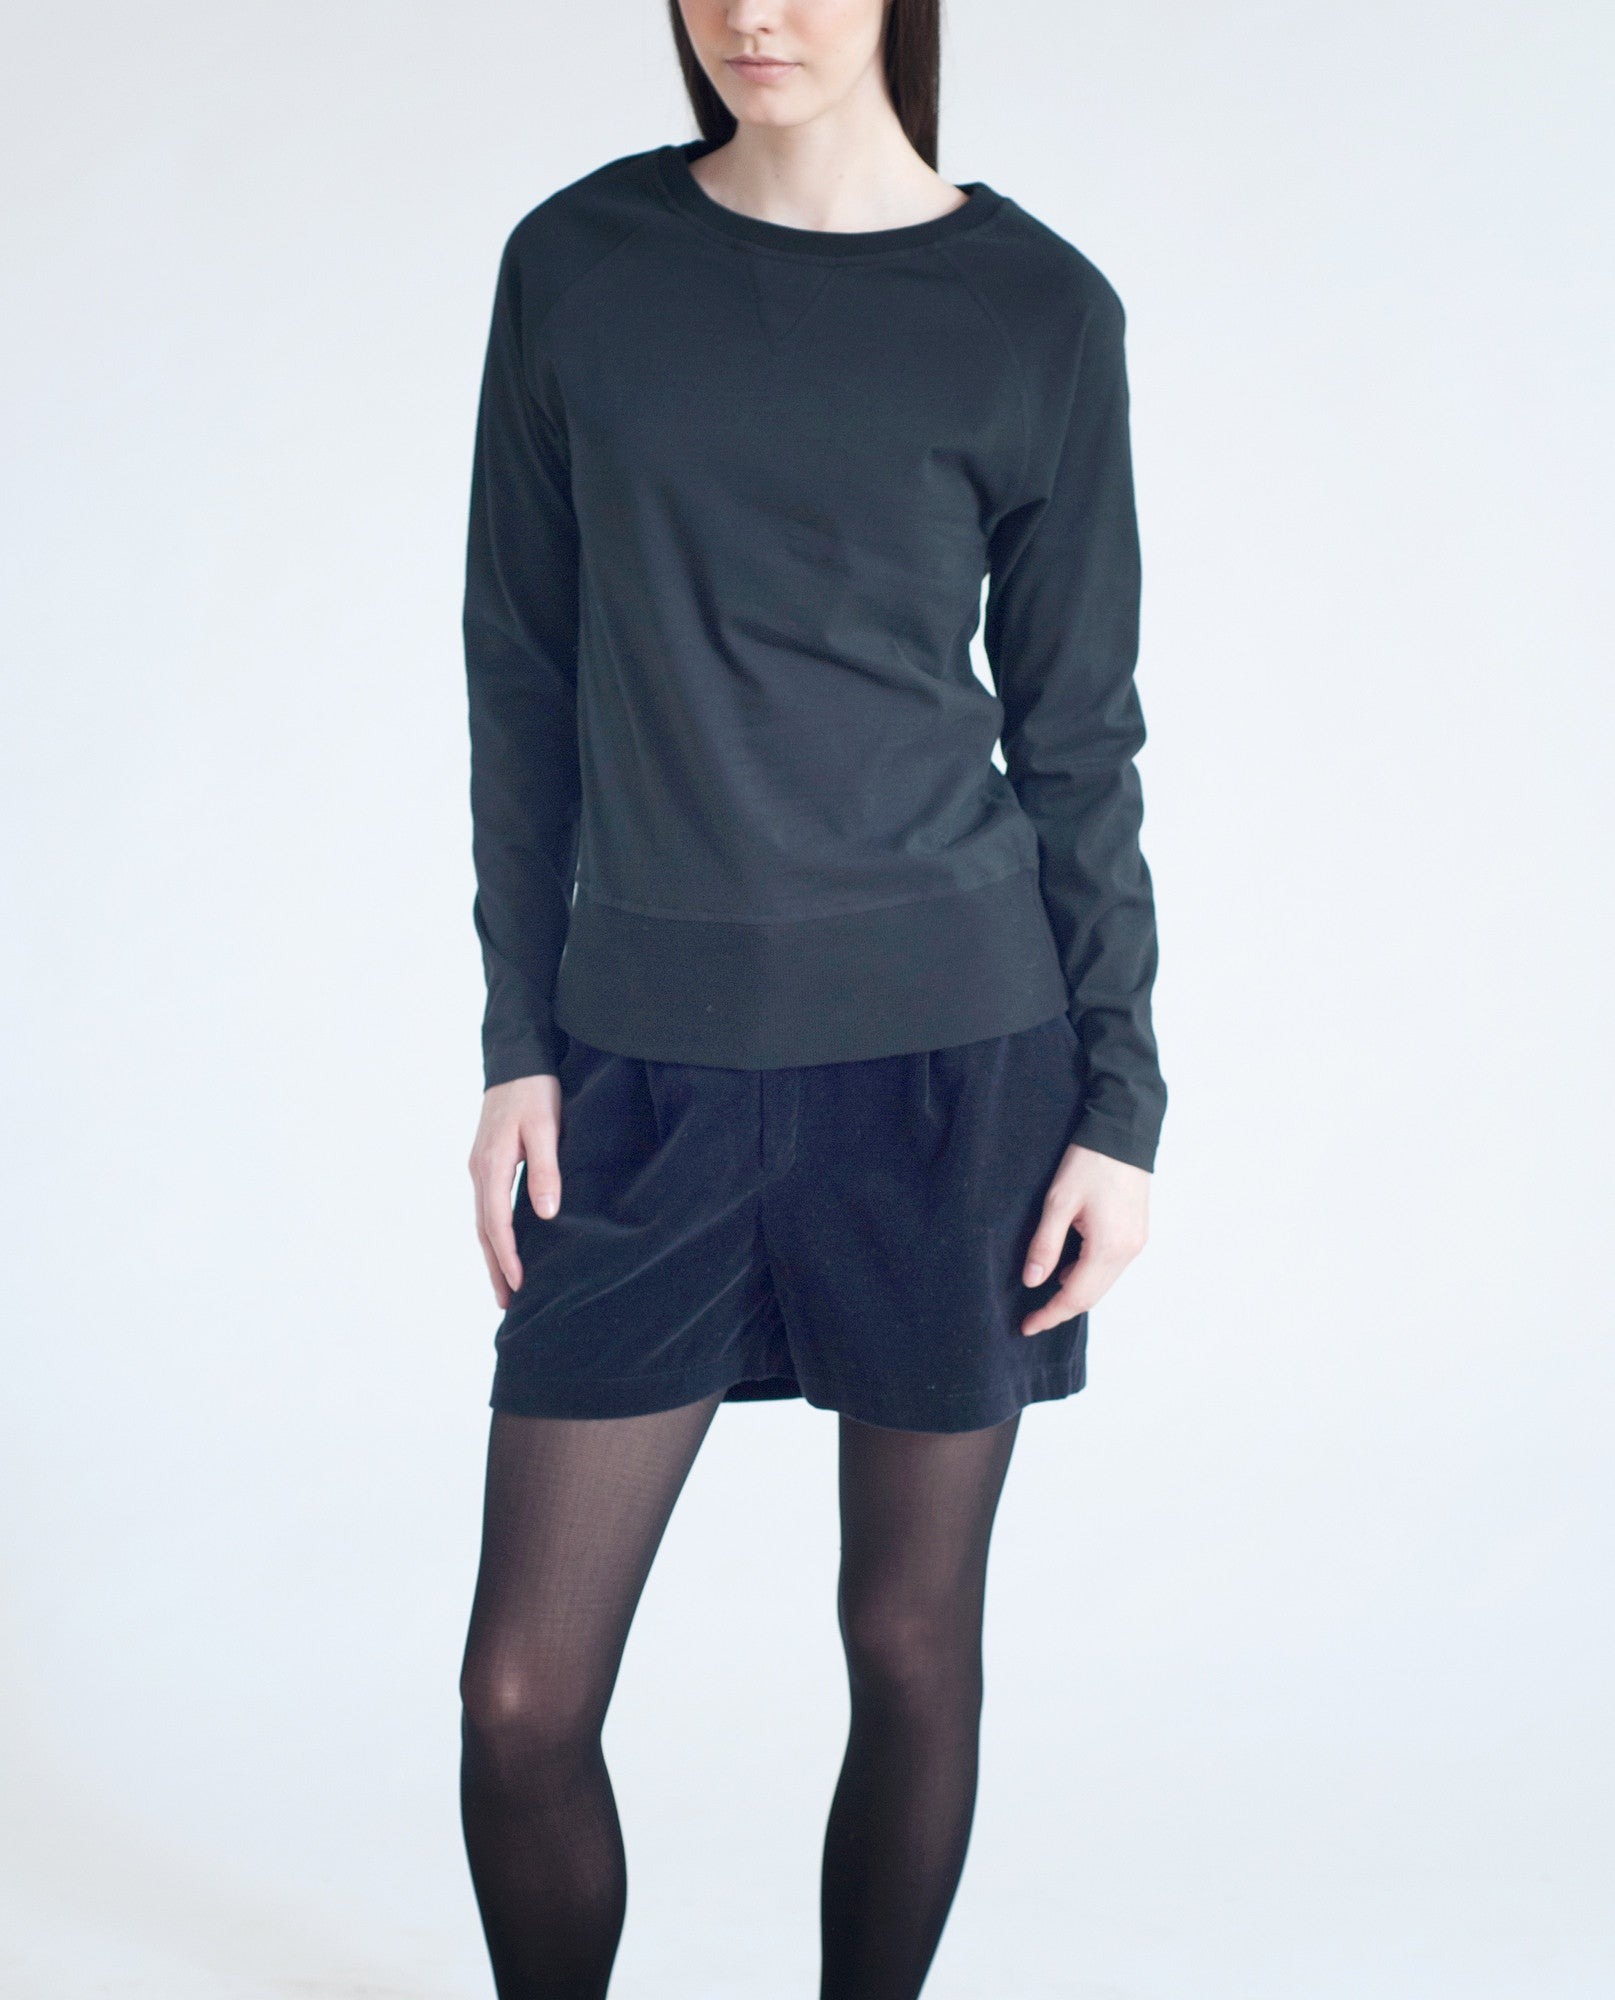 TONI Organic Cotton Top In Black